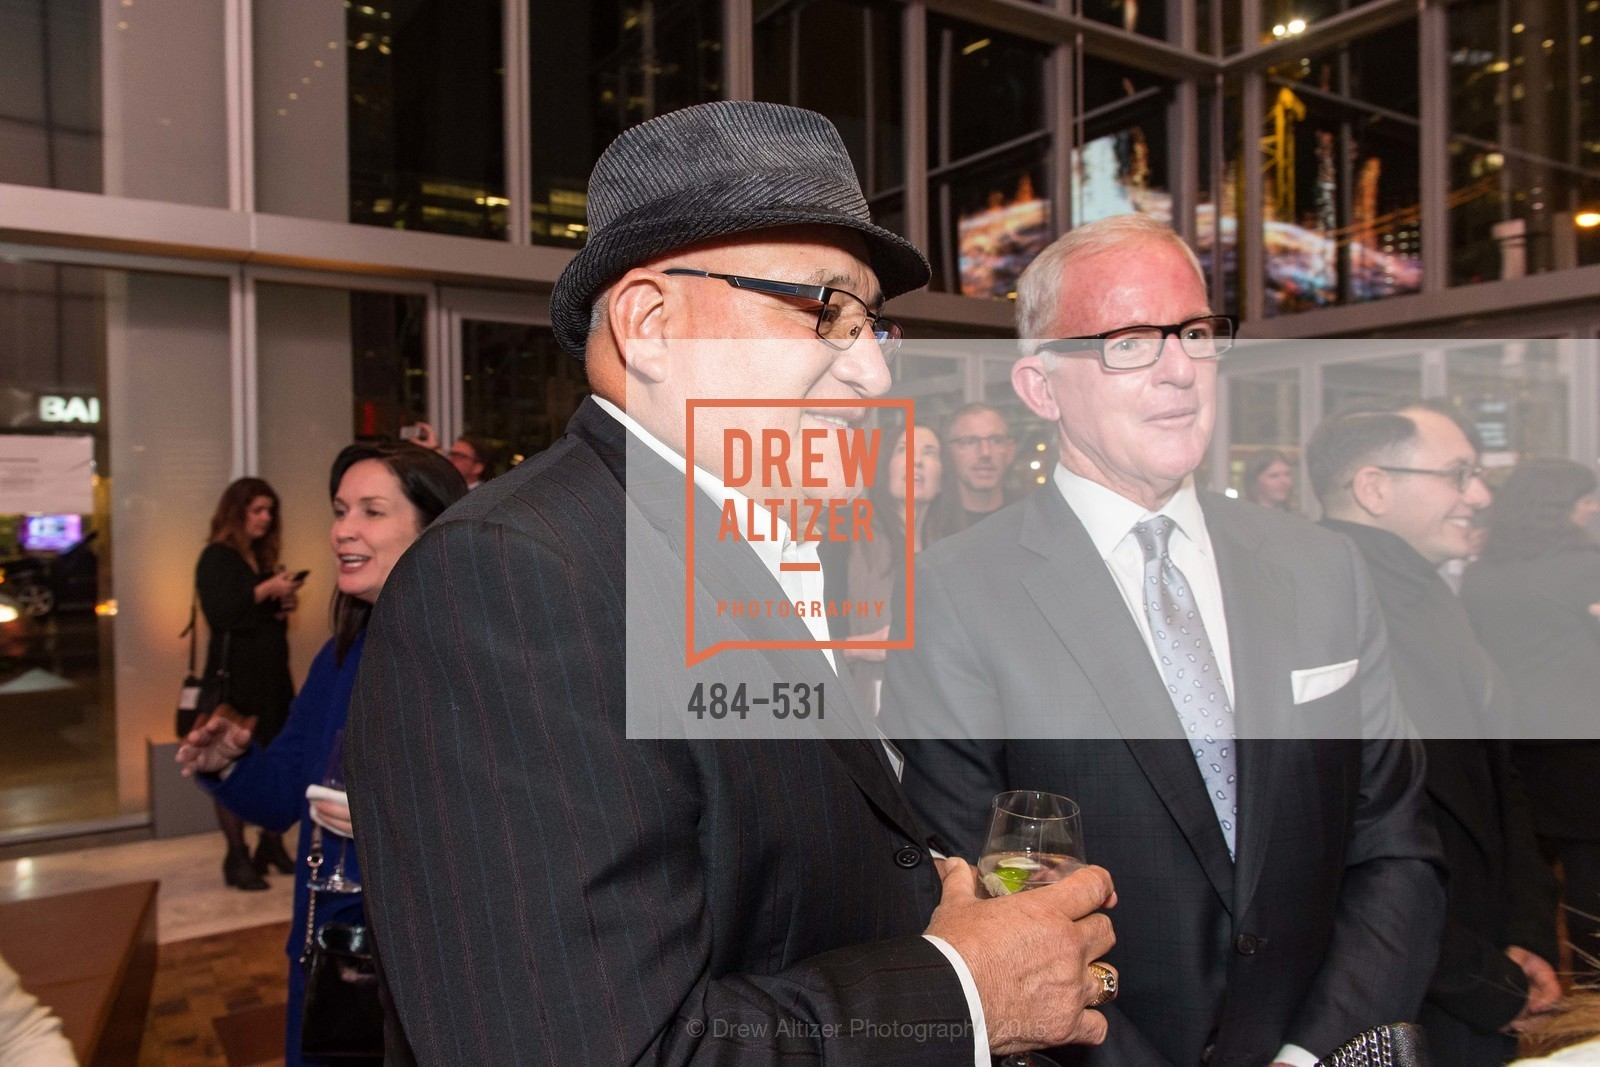 Jonathan Gomez Snr., John Kilroy, Kilroy Unveiling Presents Virtual Depictions: San Francisco by Refik Anadol, 350 Mission Street. 350 Mission Street, November 16th, 2015,Drew Altizer, Drew Altizer Photography, full-service agency, private events, San Francisco photographer, photographer california